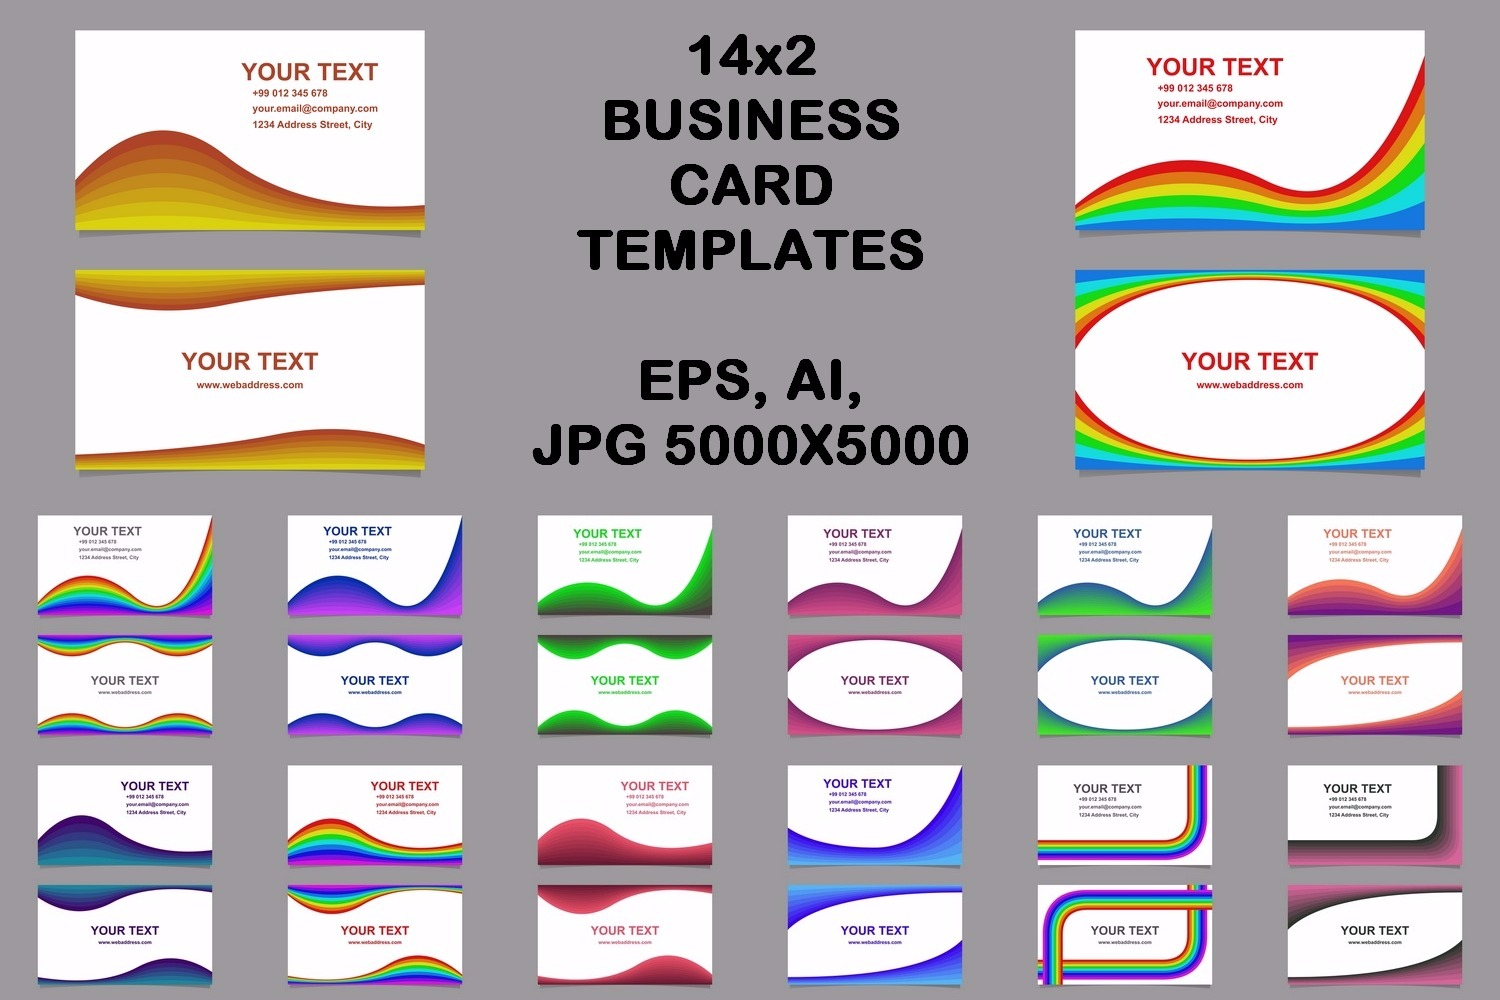 14x2 curved design business card templates (EPS, AI, JPG 5000x5000) example image 2